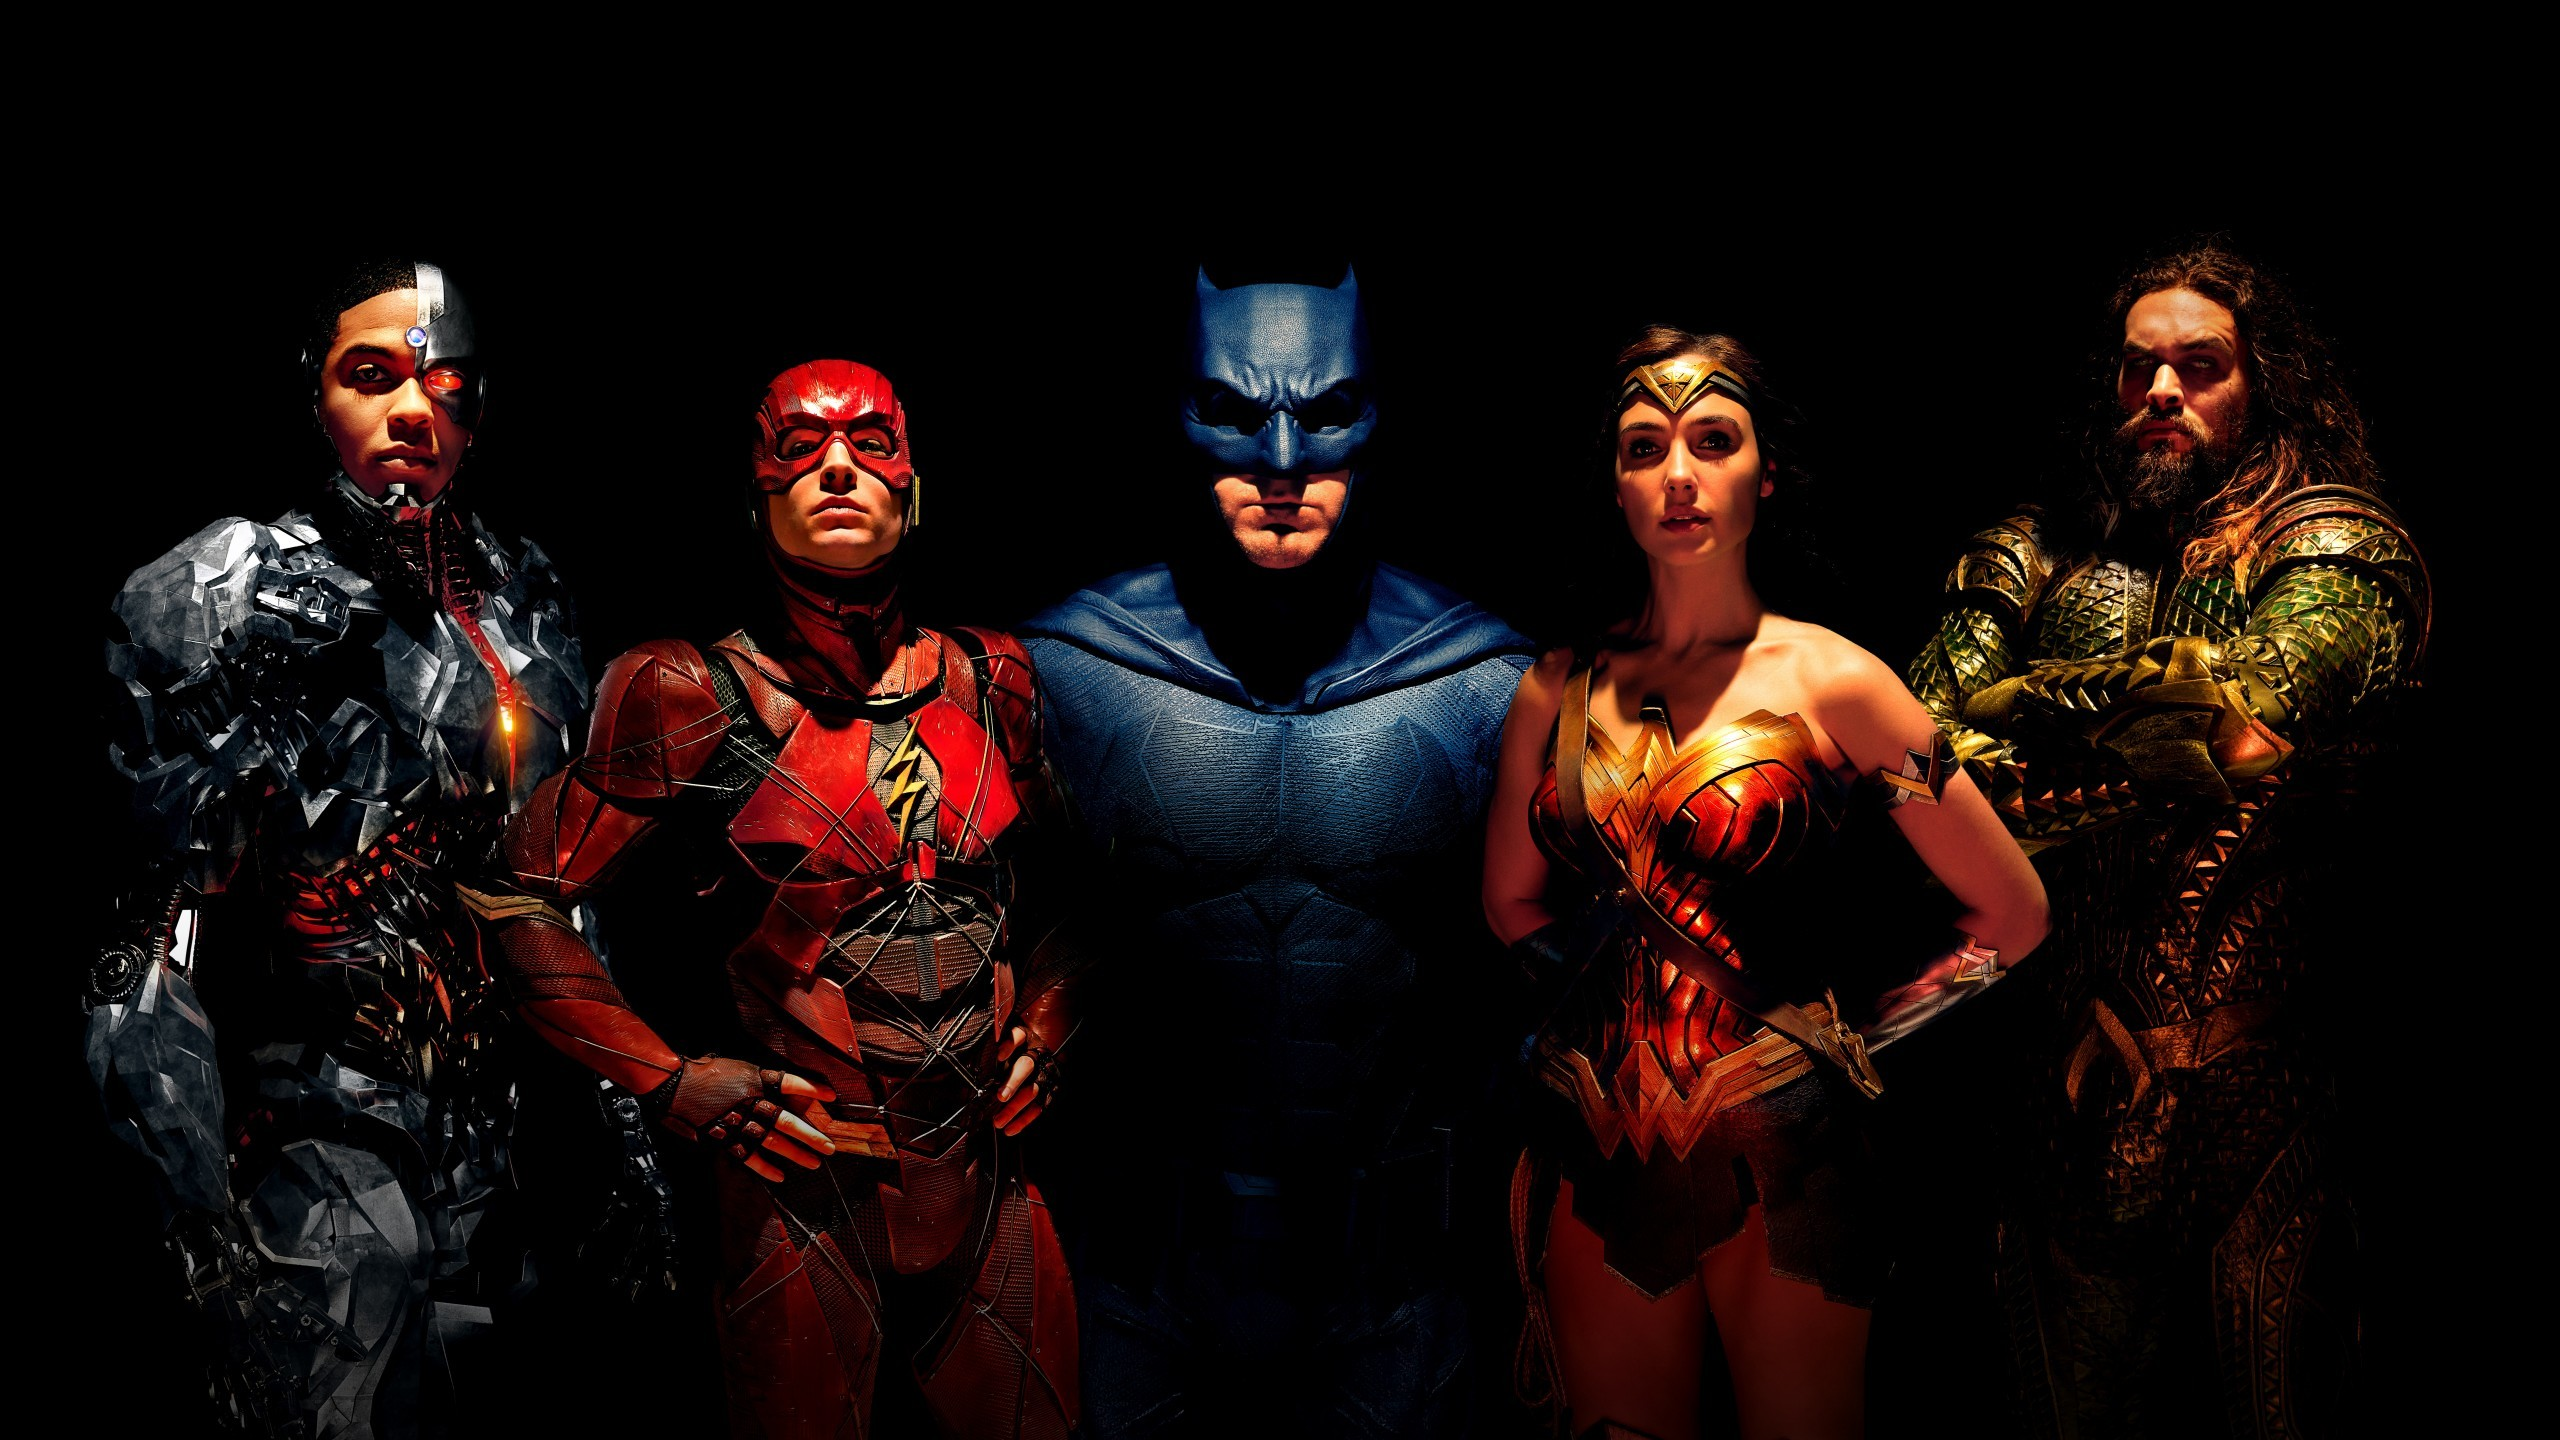 2560x1440 Movies Justice League Wallpaper